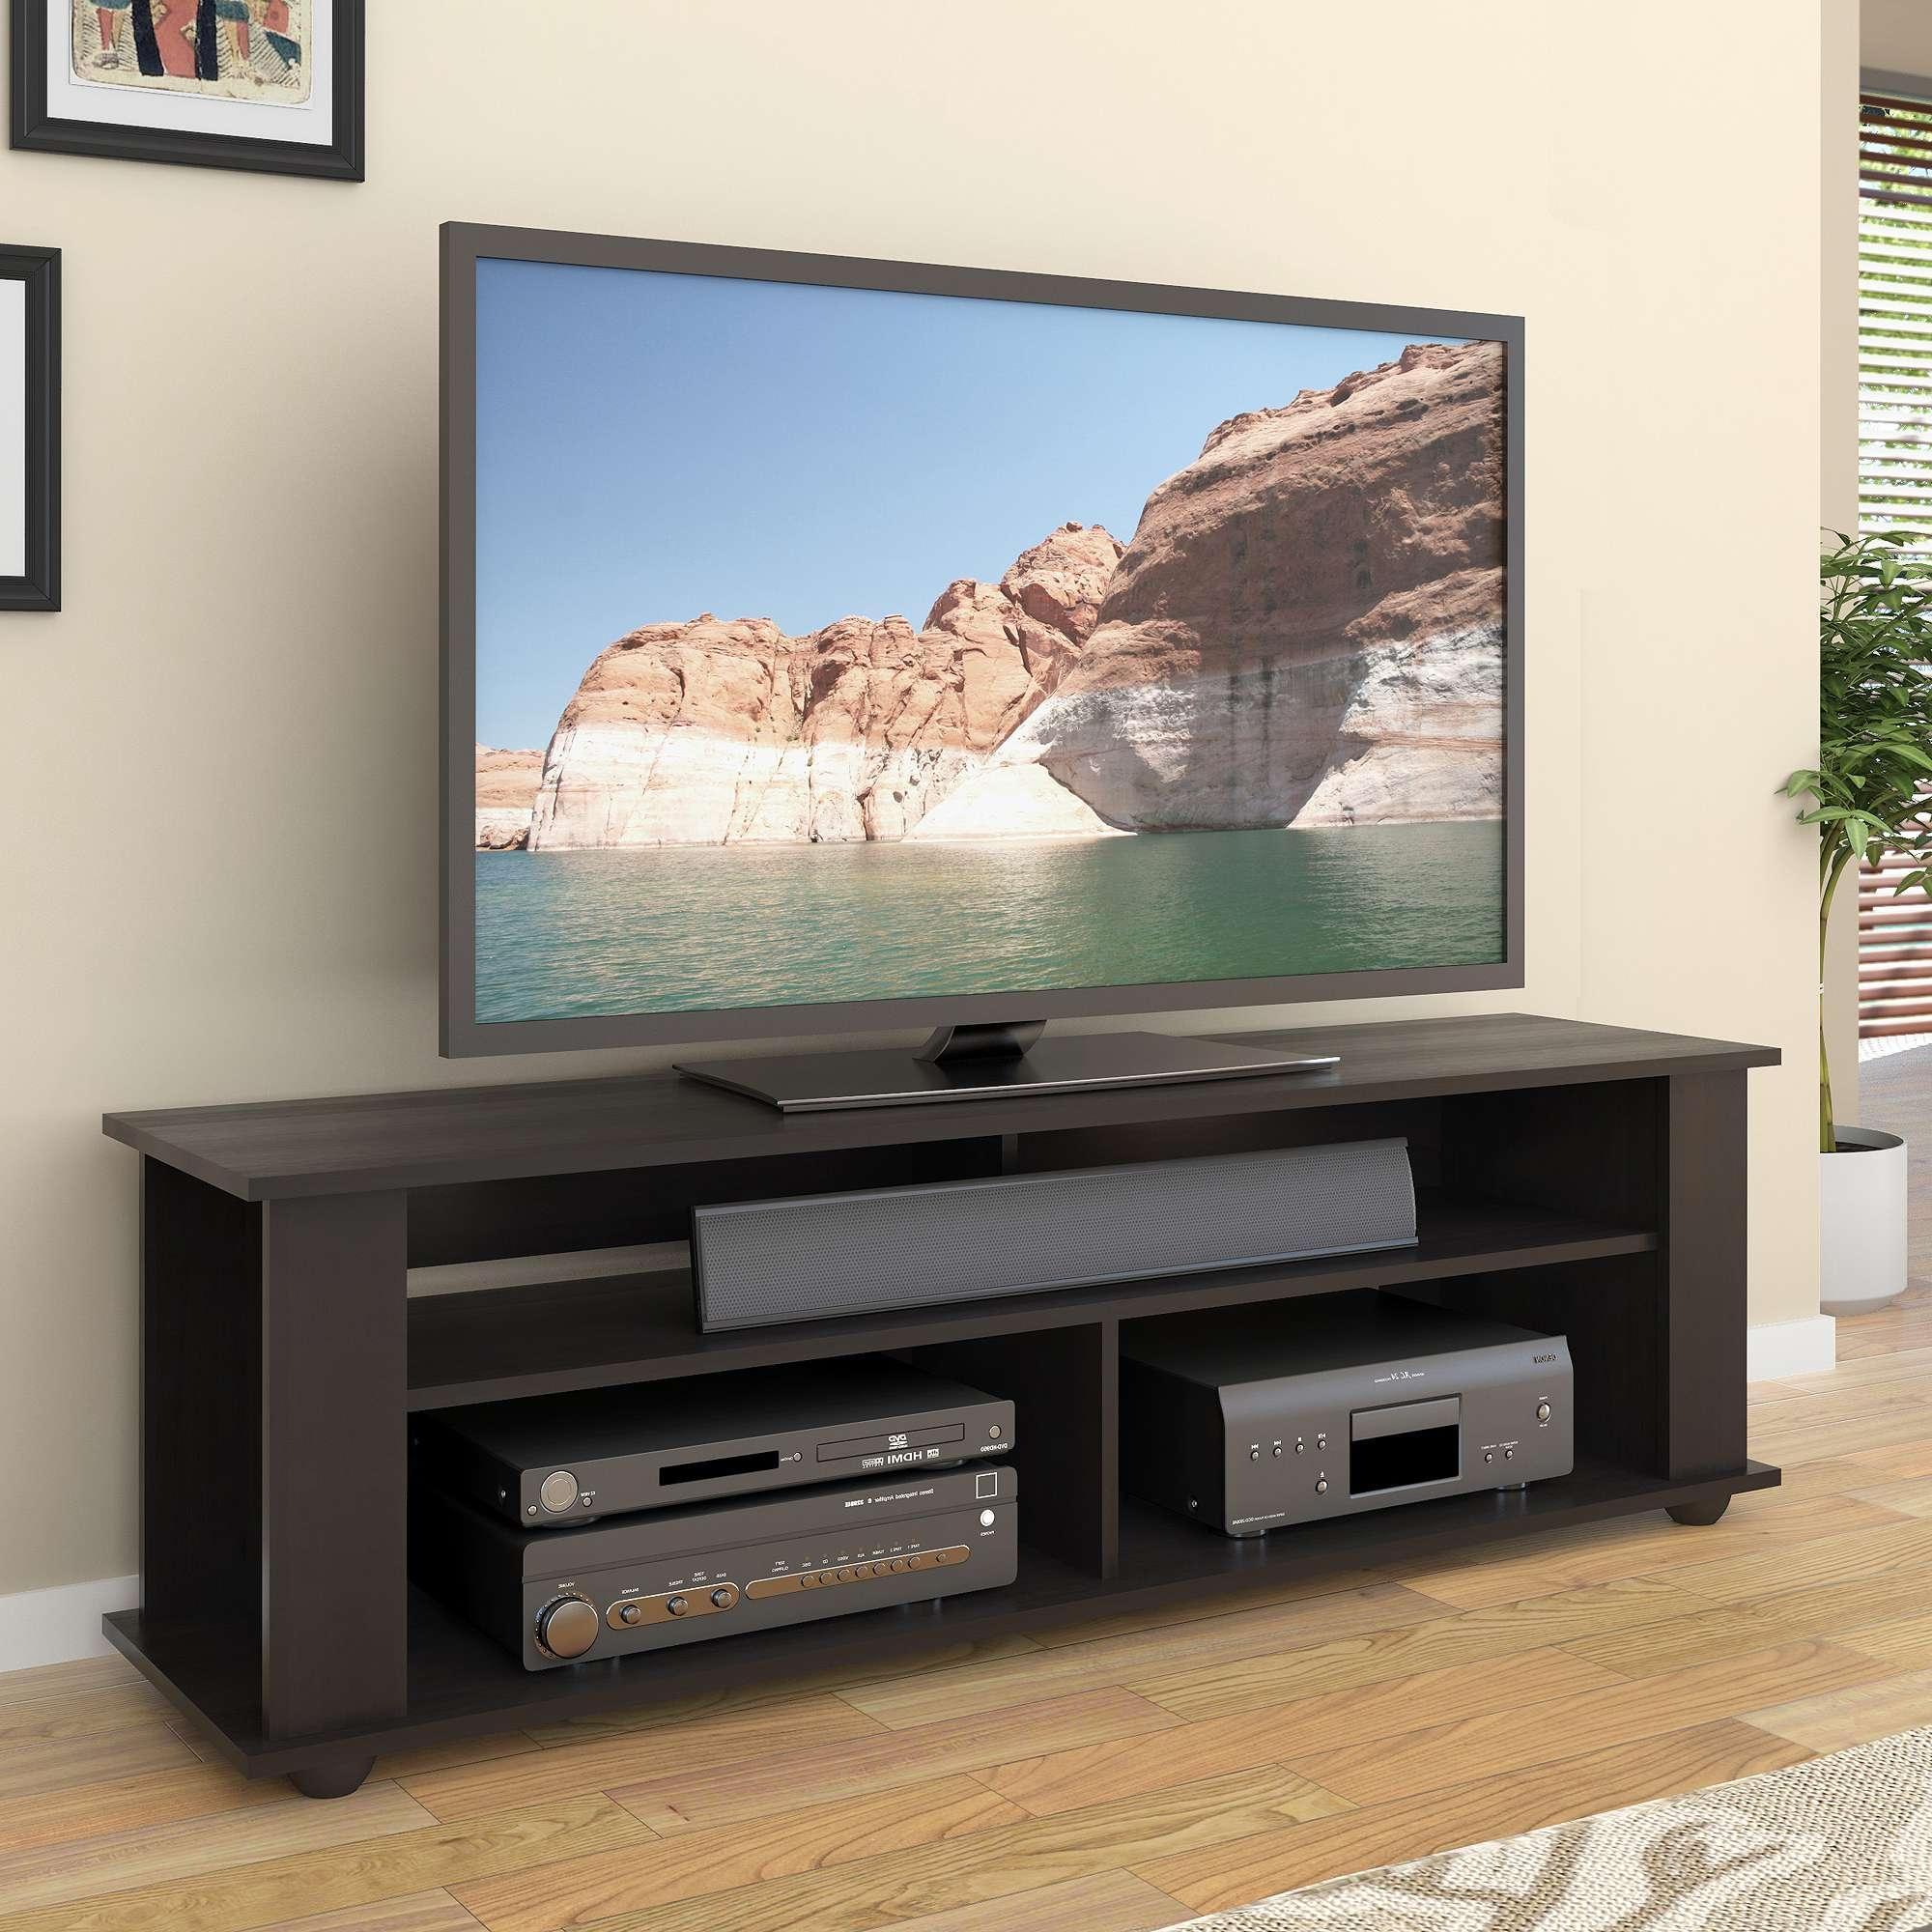 Lovely Tv Stands For 65 Inch Tvs 50 On Small Home Remodel Ideas In Tv Stands For 50 Inch Tvs (View 11 of 15)